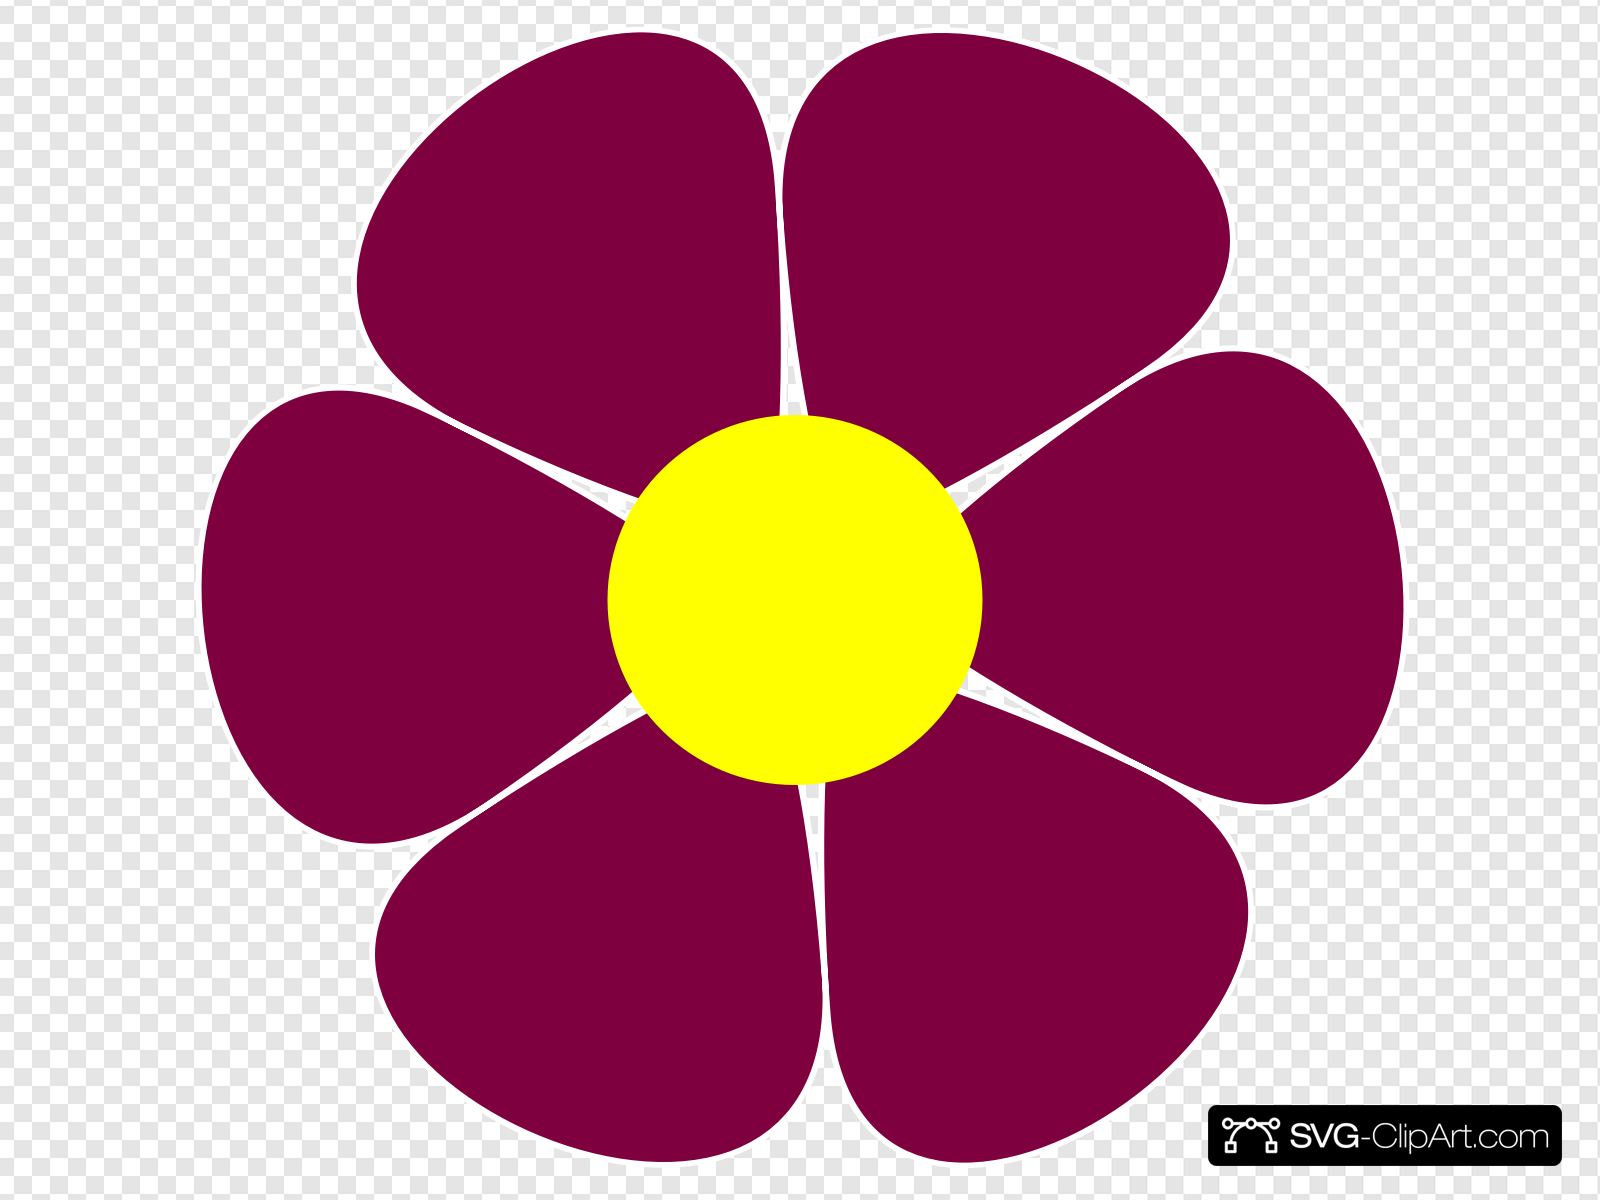 Maroon flower clipart graphic transparent stock Maroon Flower Clip art, Icon and SVG - SVG Clipart graphic transparent stock